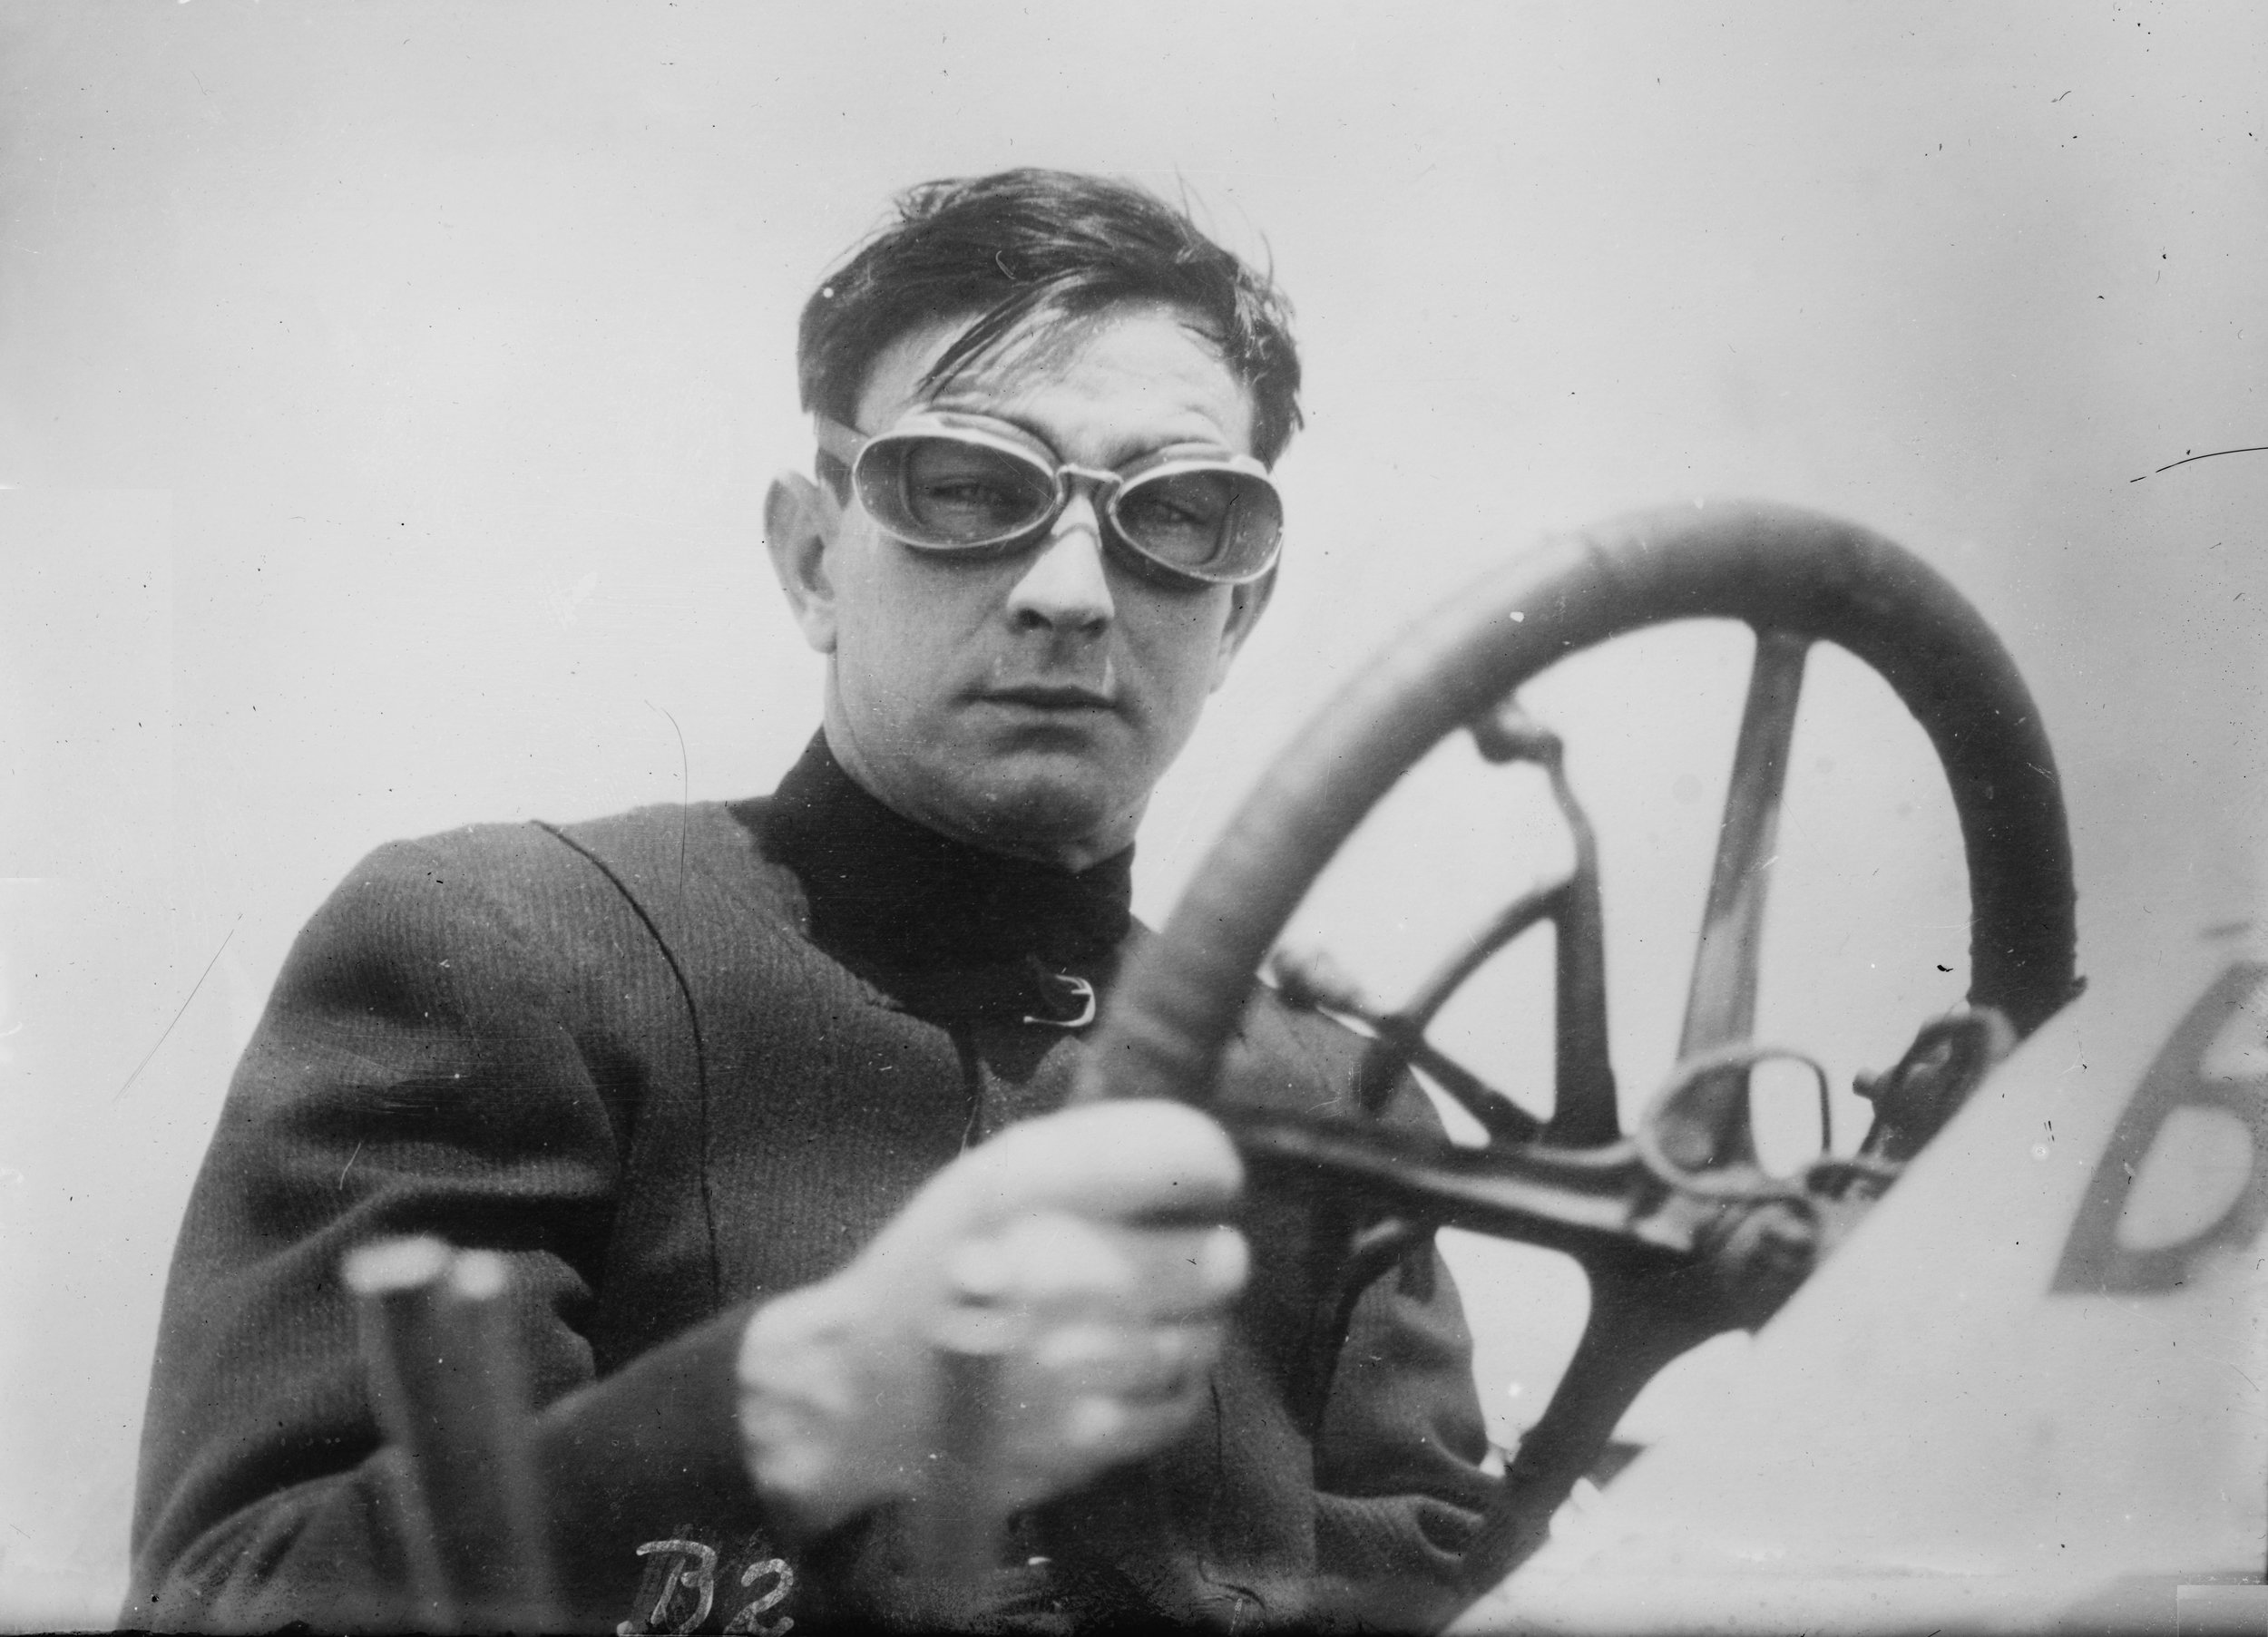 Race car driver Bob Burman, 1911 (The George Grantham Bain Collection - Library of Congress archive)